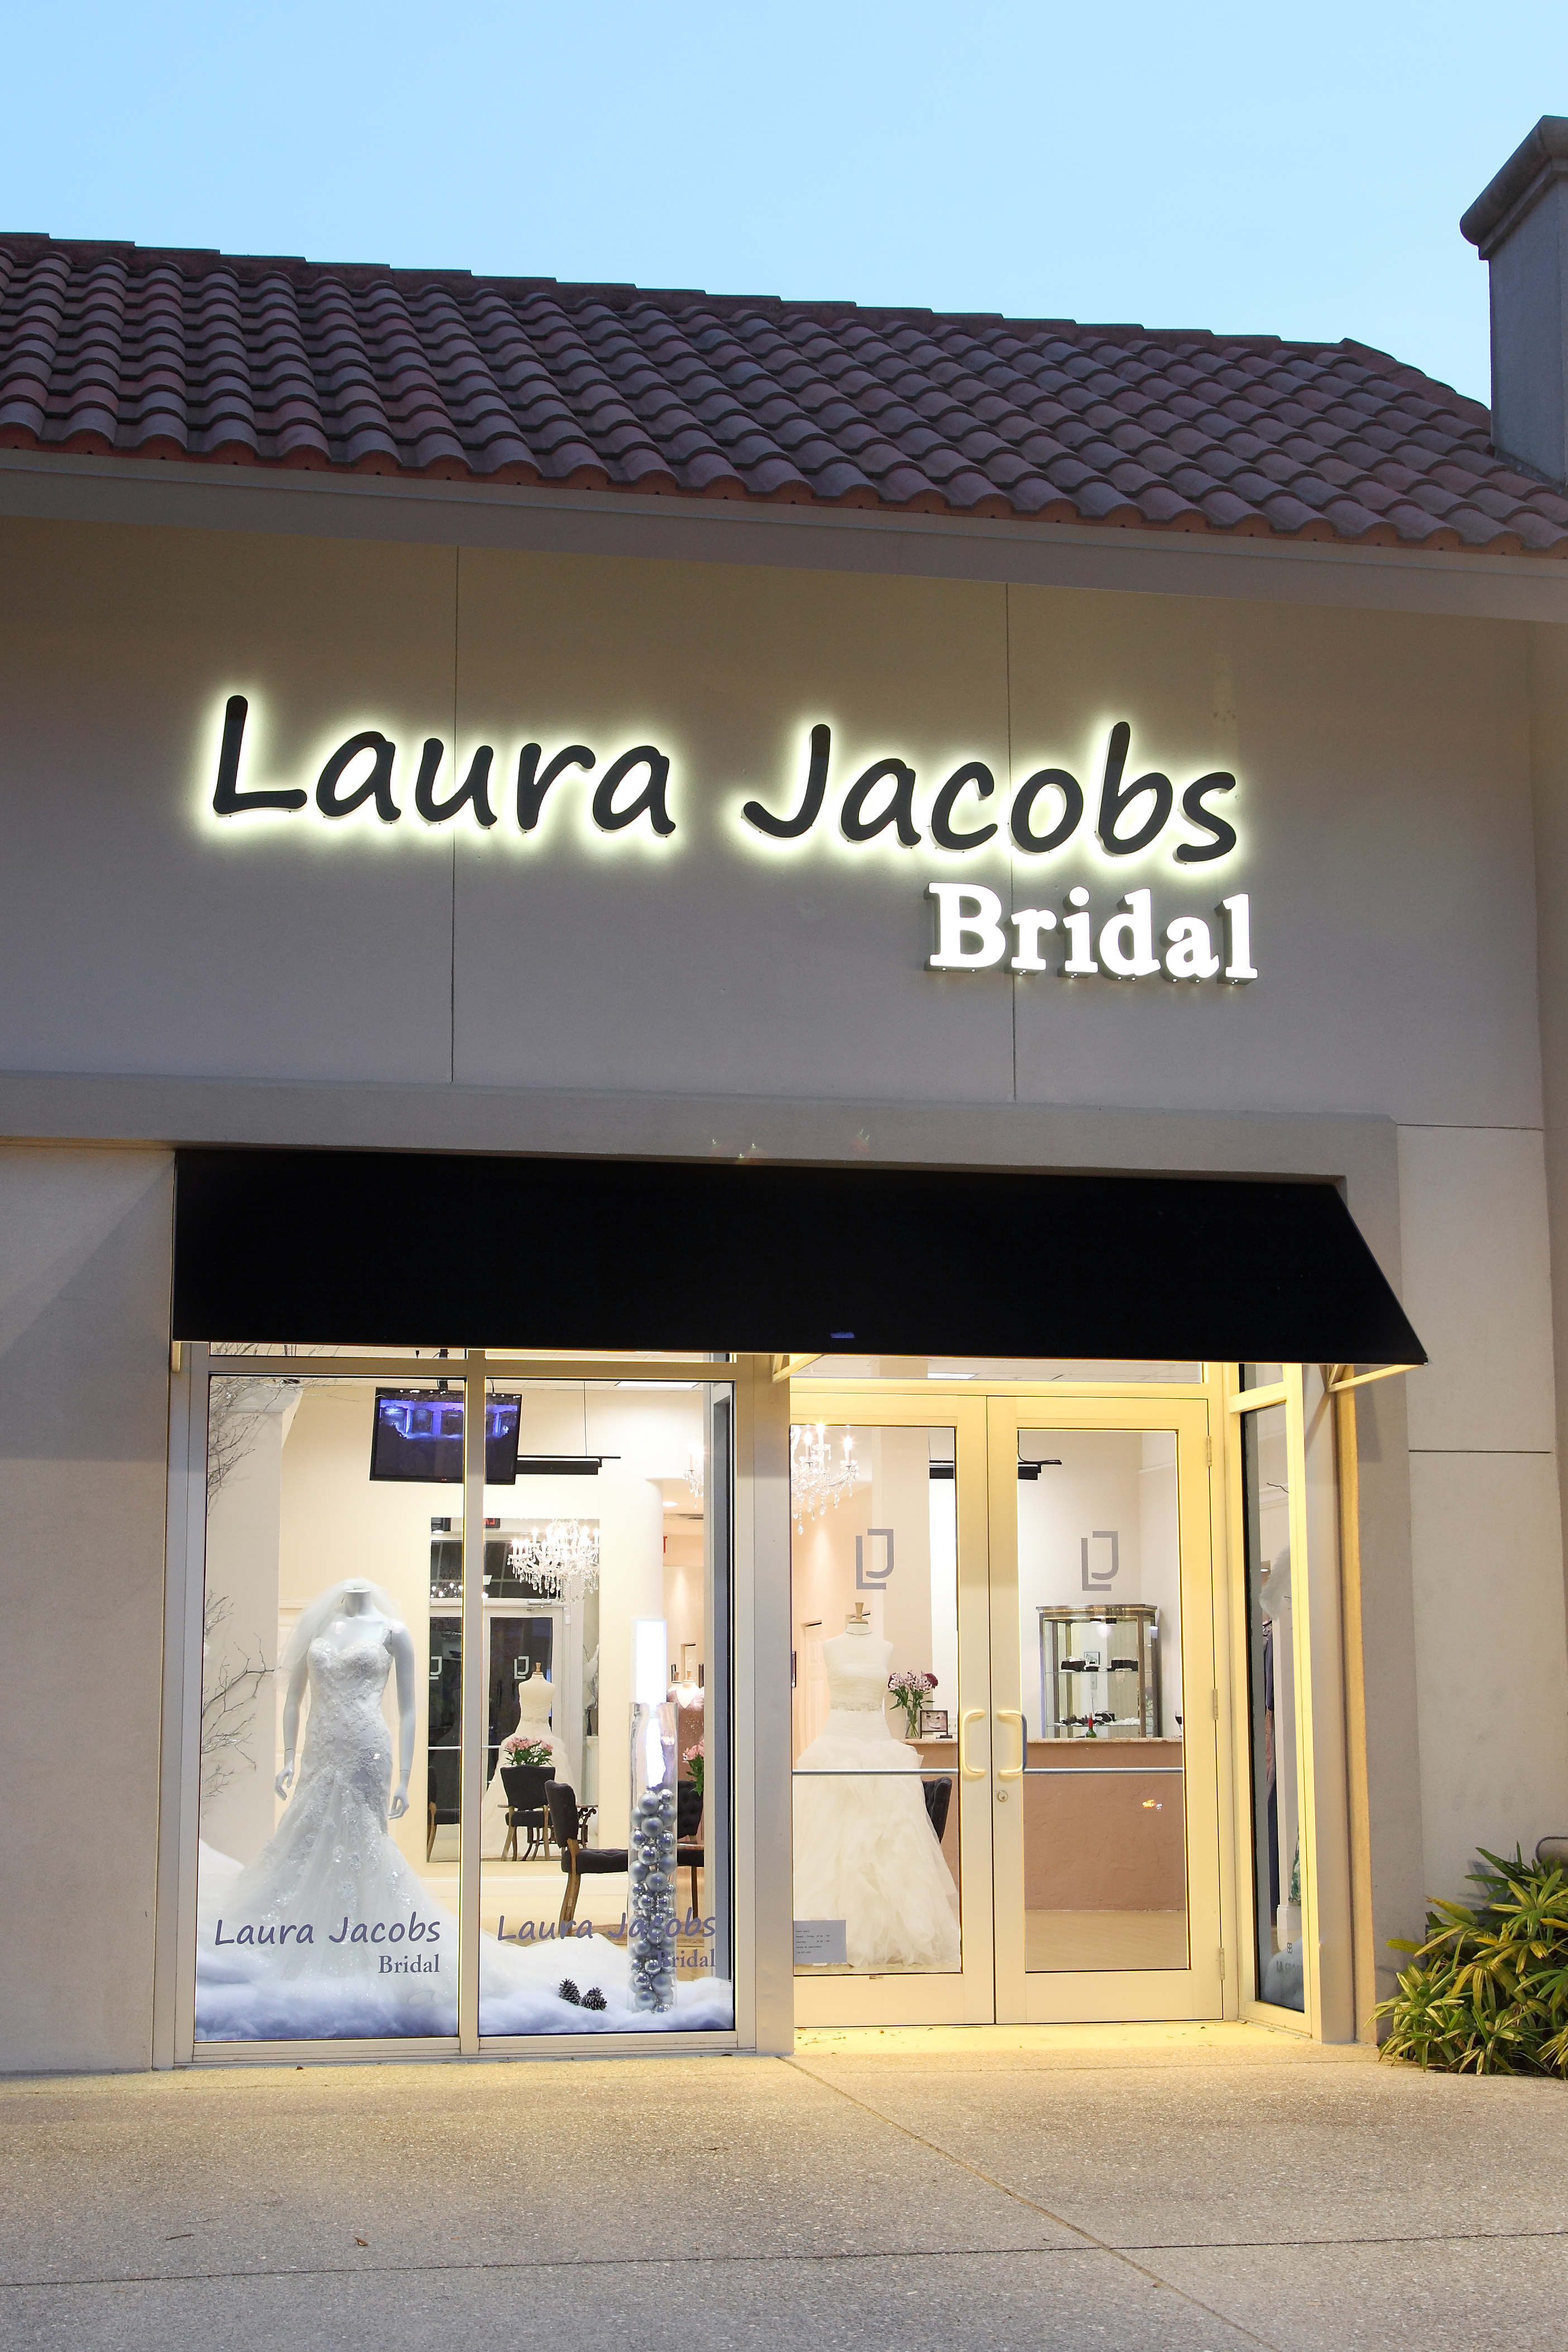 Tony and Loretta Violanti Owners of Laura Jacobs Bridal